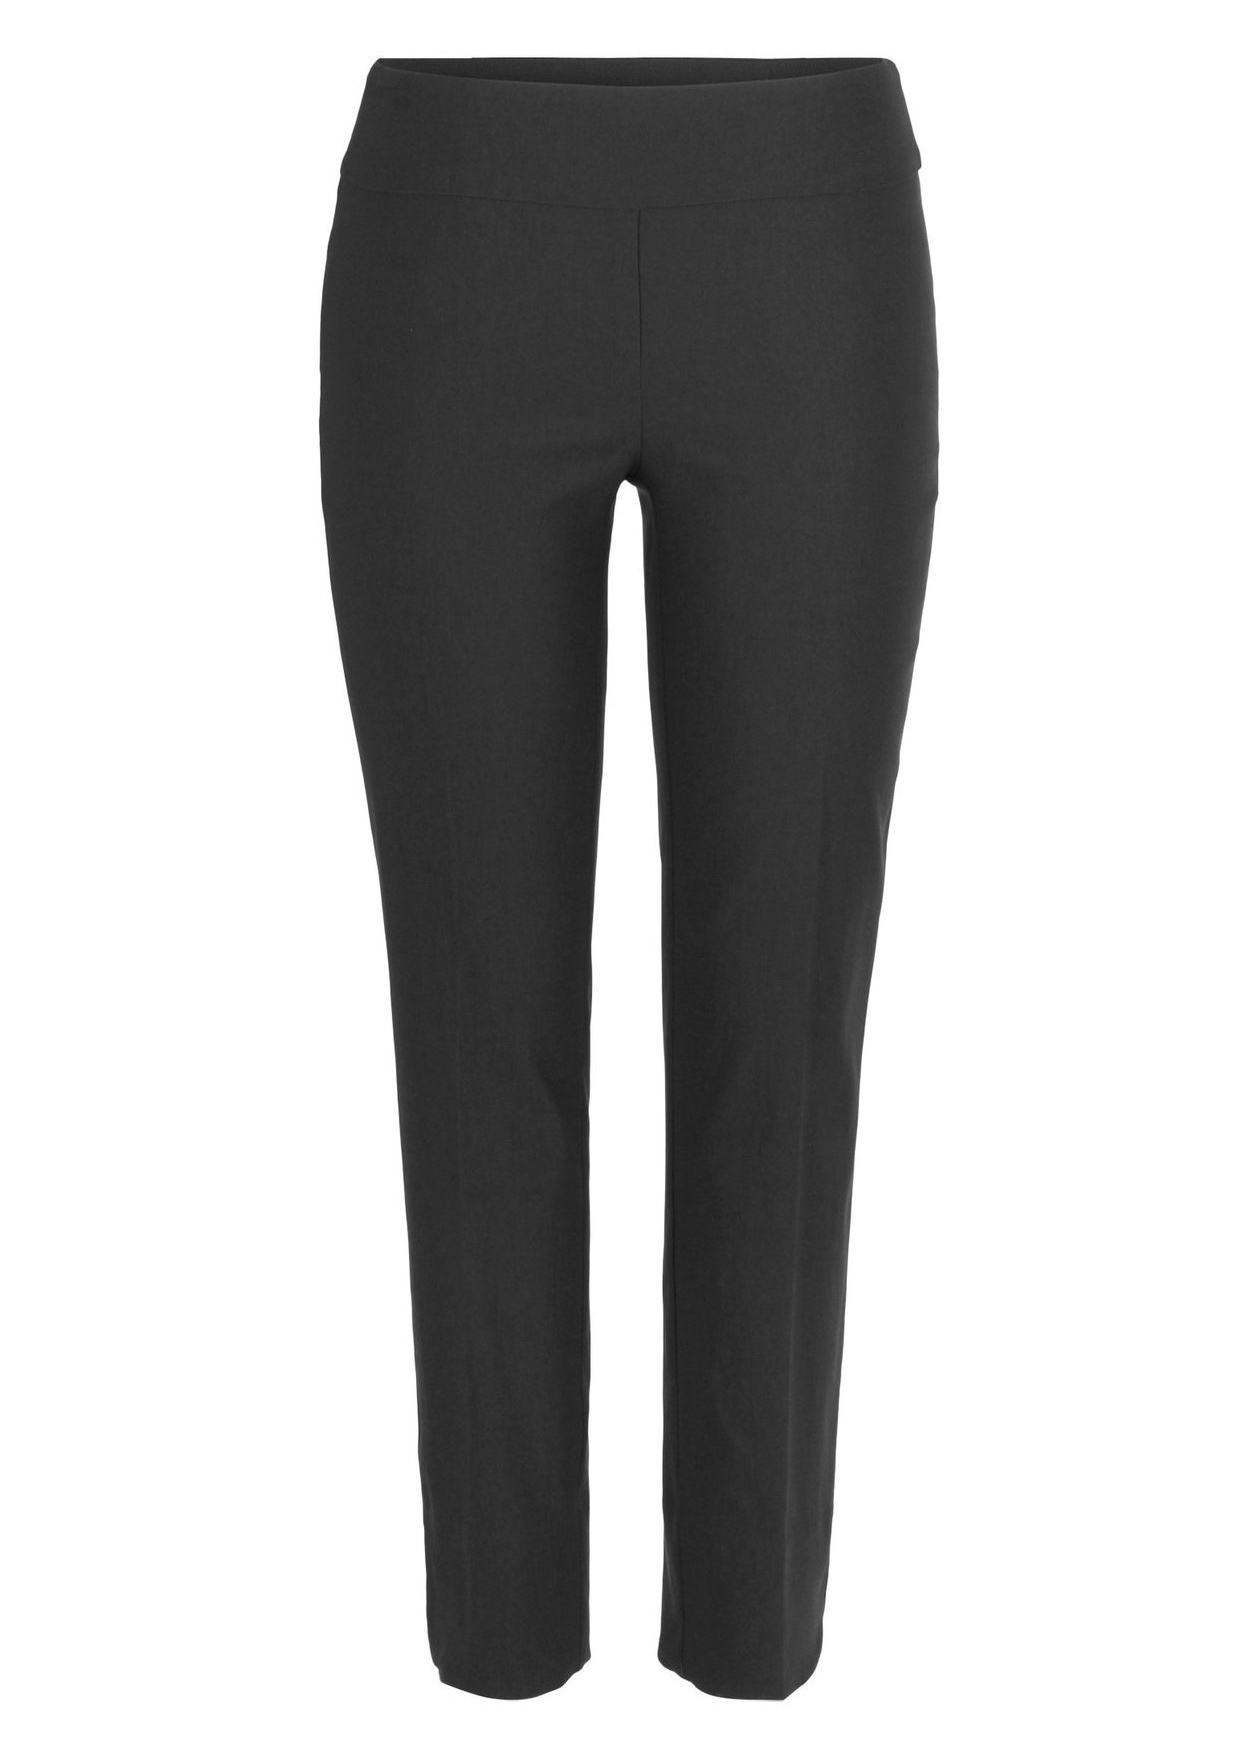 cf88fa9240 Black Petal Techno Pant - Well Read Department Store